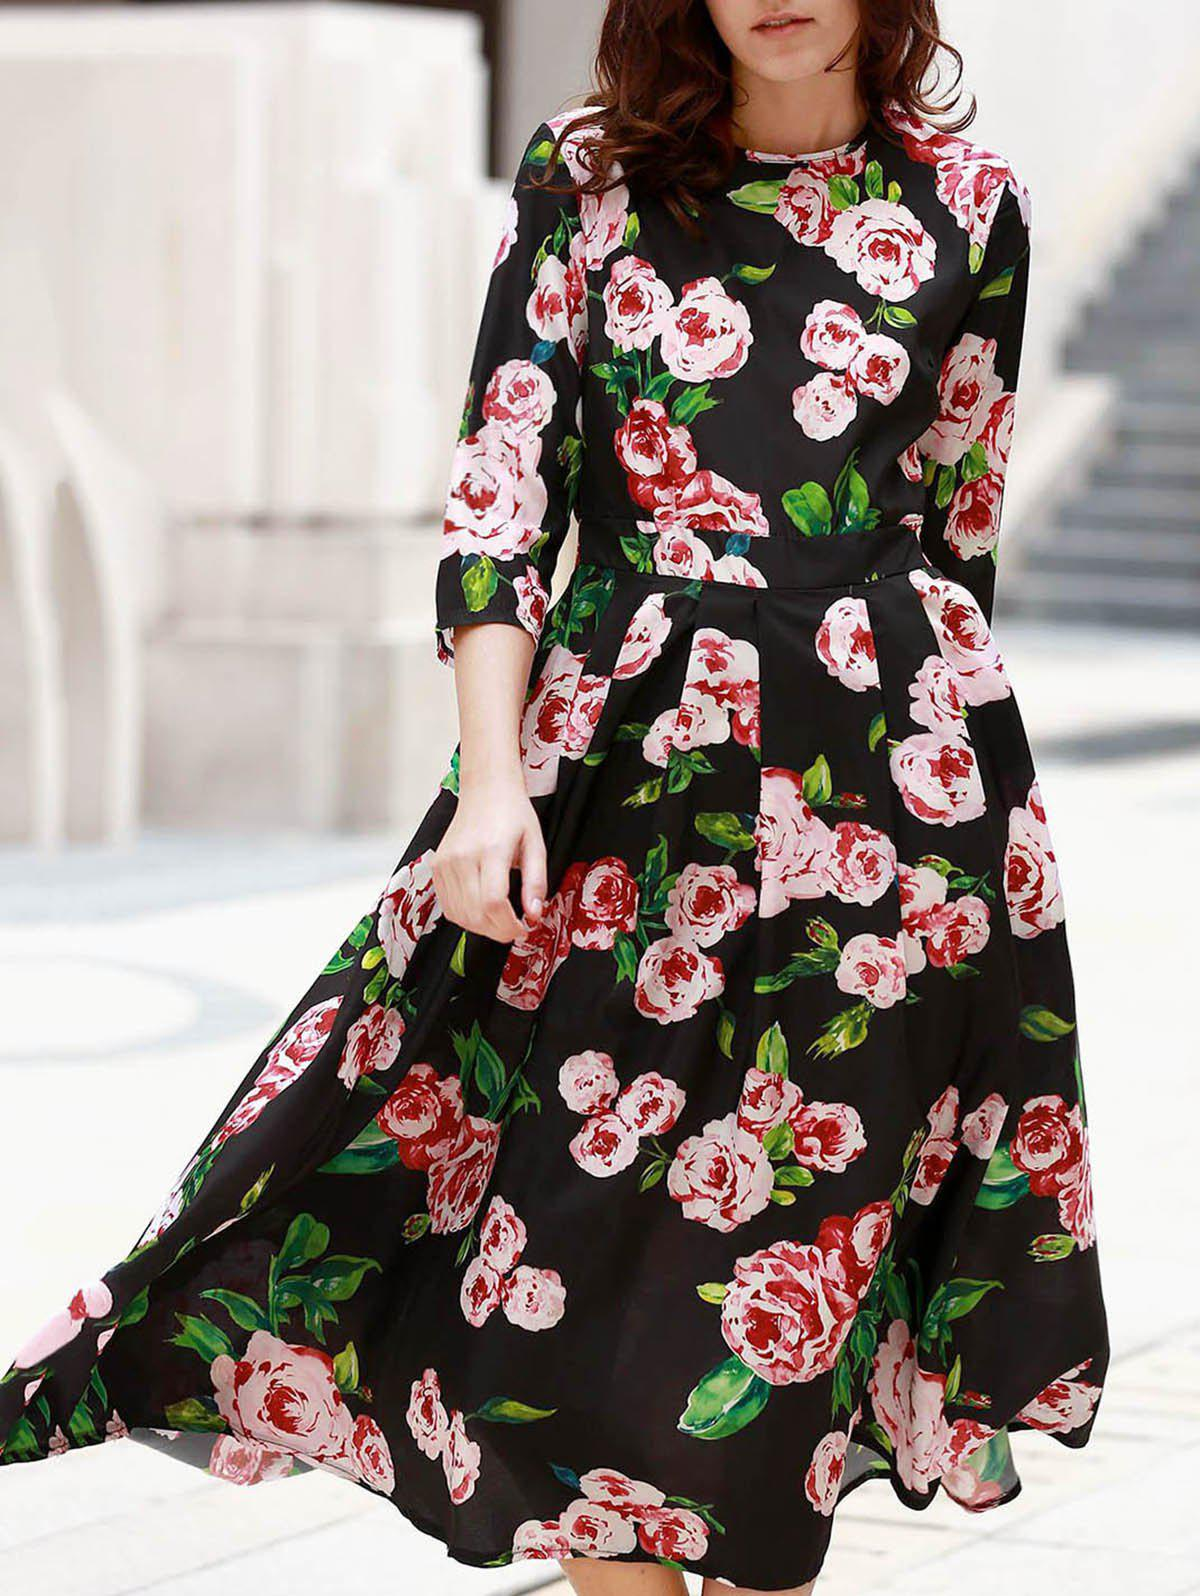 Elegant Women's Round Neck 1/2 Sleeve Floral Print Dress - BLACK S